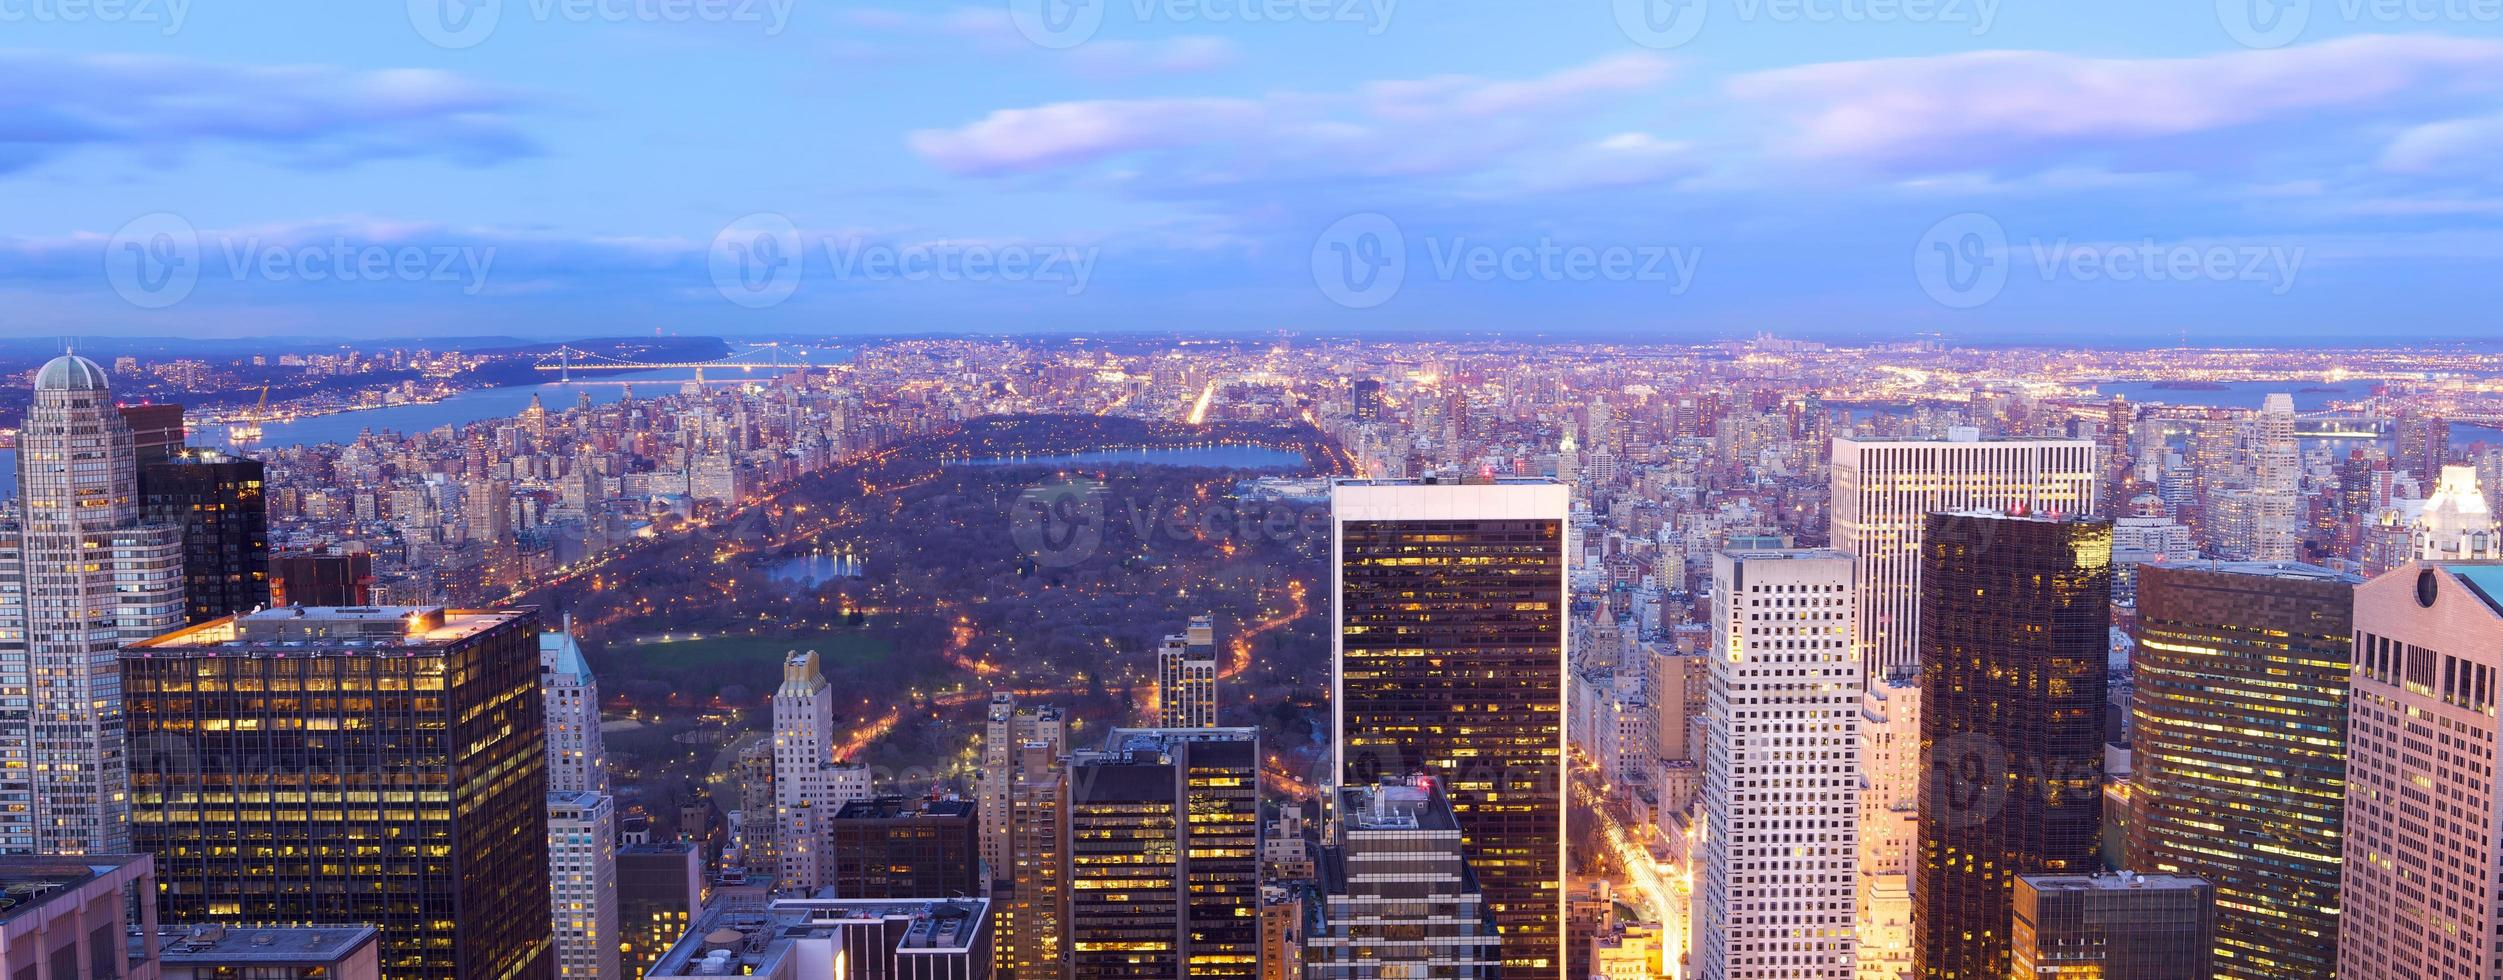 Central Park aerial view panorama photo